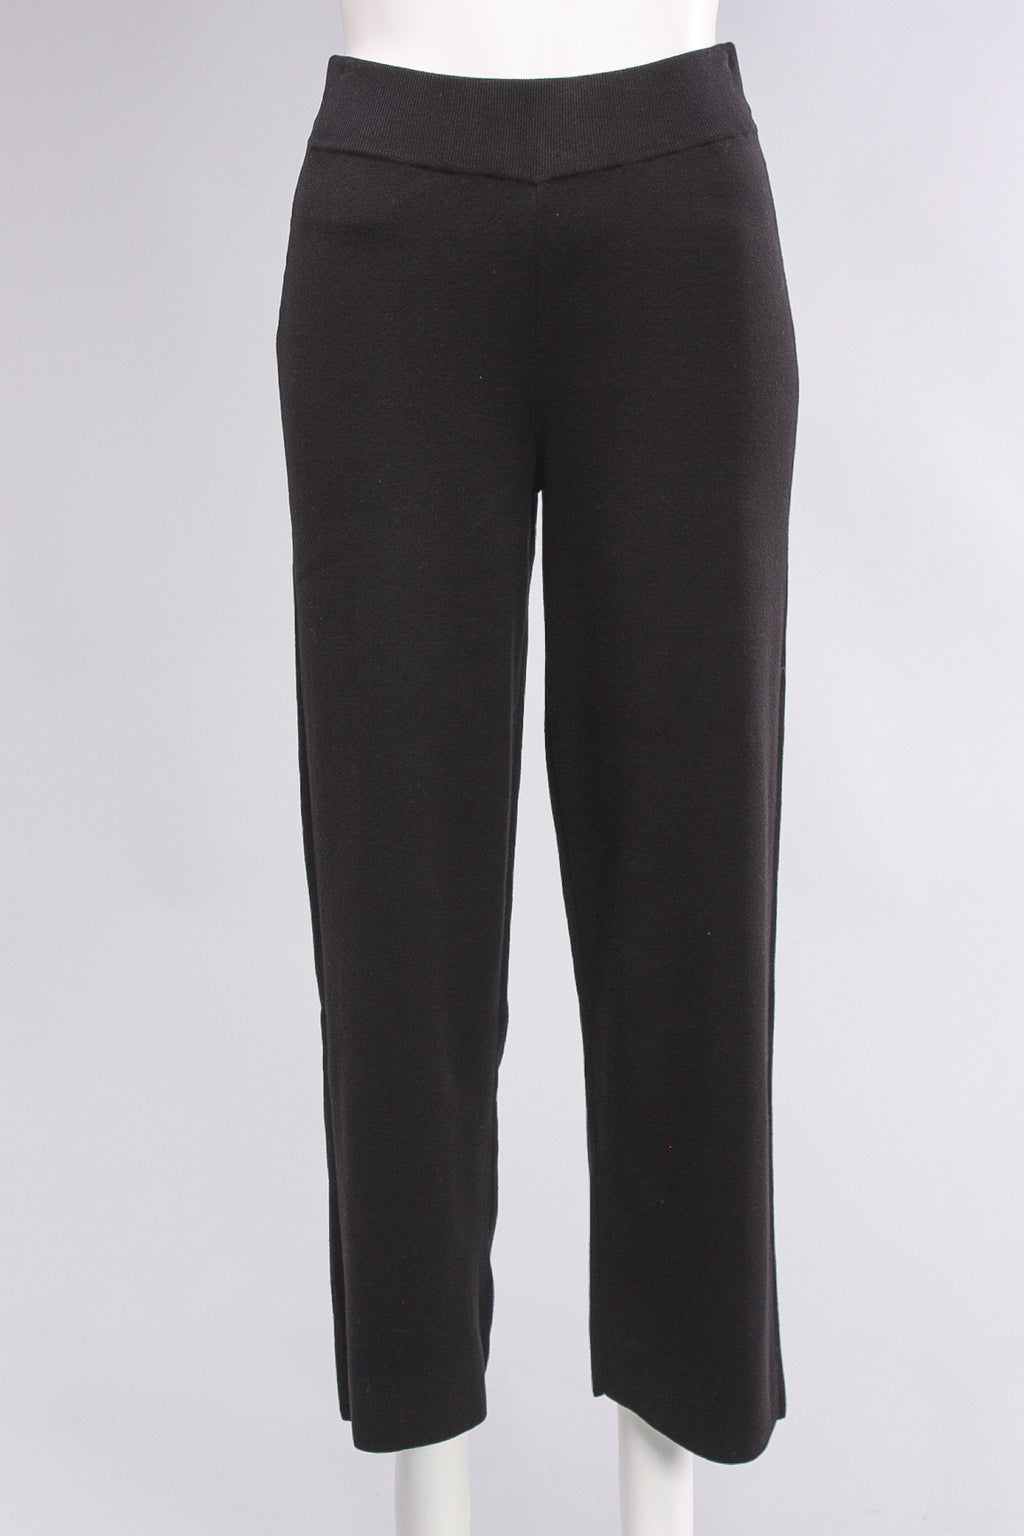 Nuance Flood Pants in Black